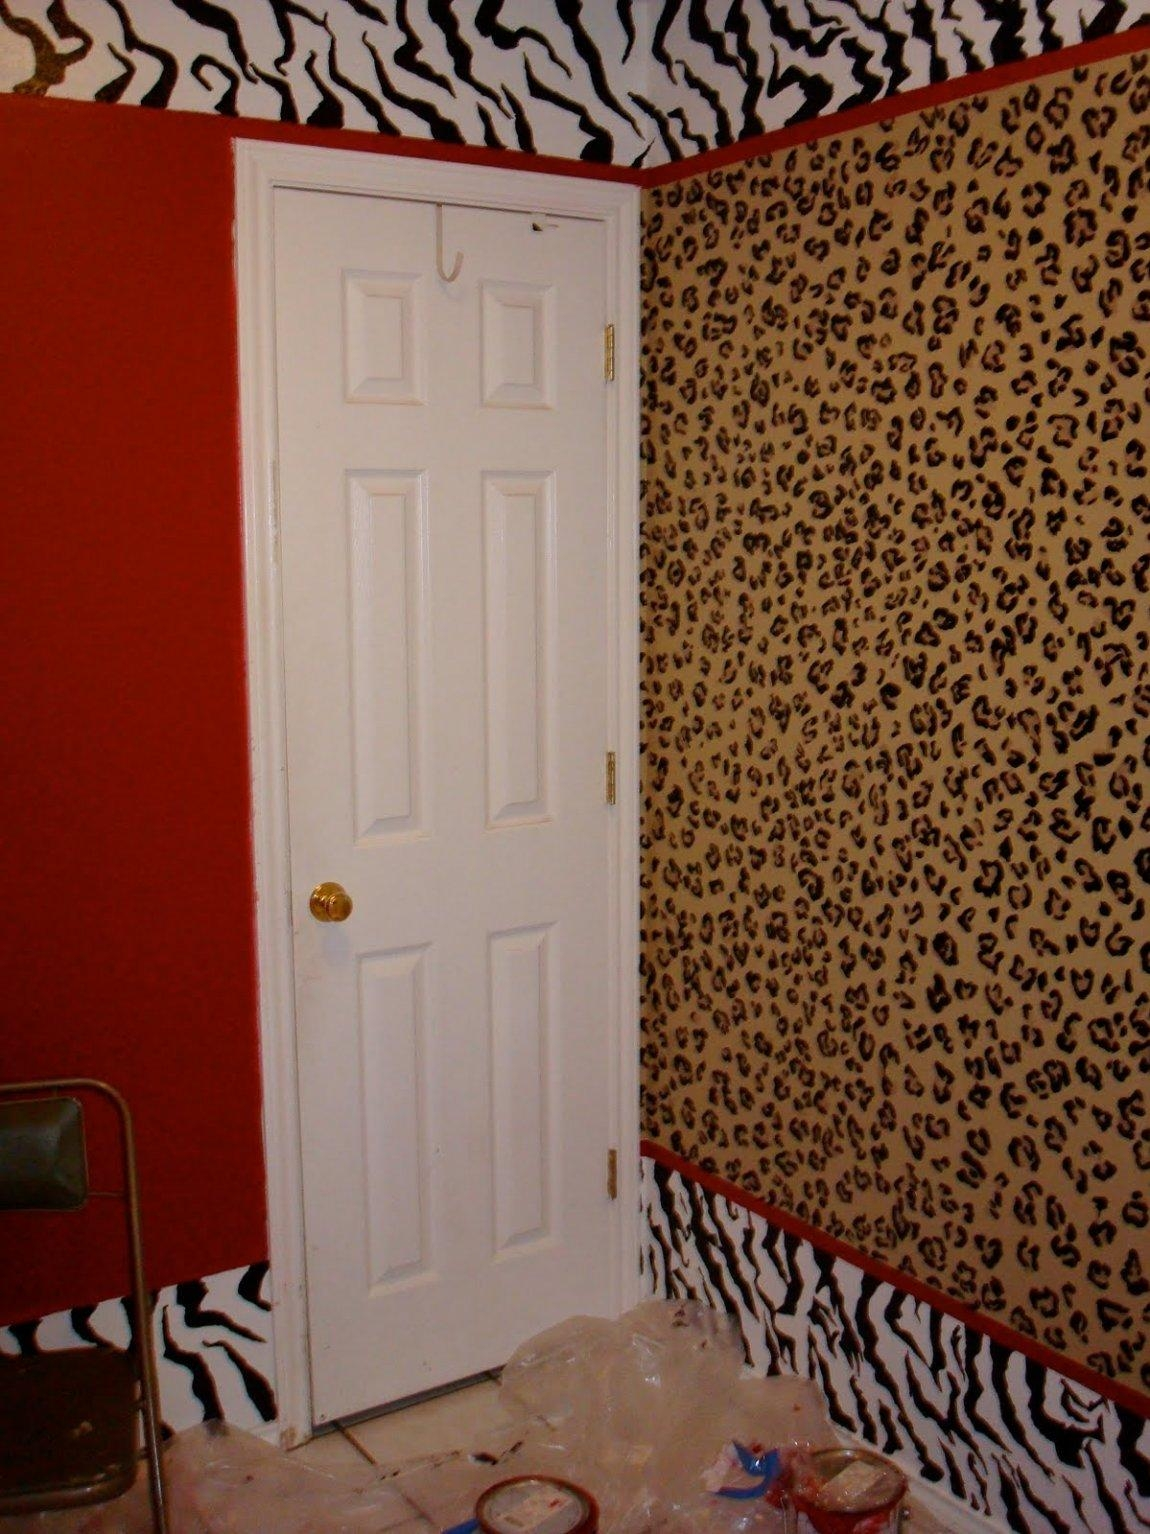 What Colors Go With Leopard Print Bedroom Decor Comforter Pertaining To Leopard Print Wall Art (View 18 of 20)